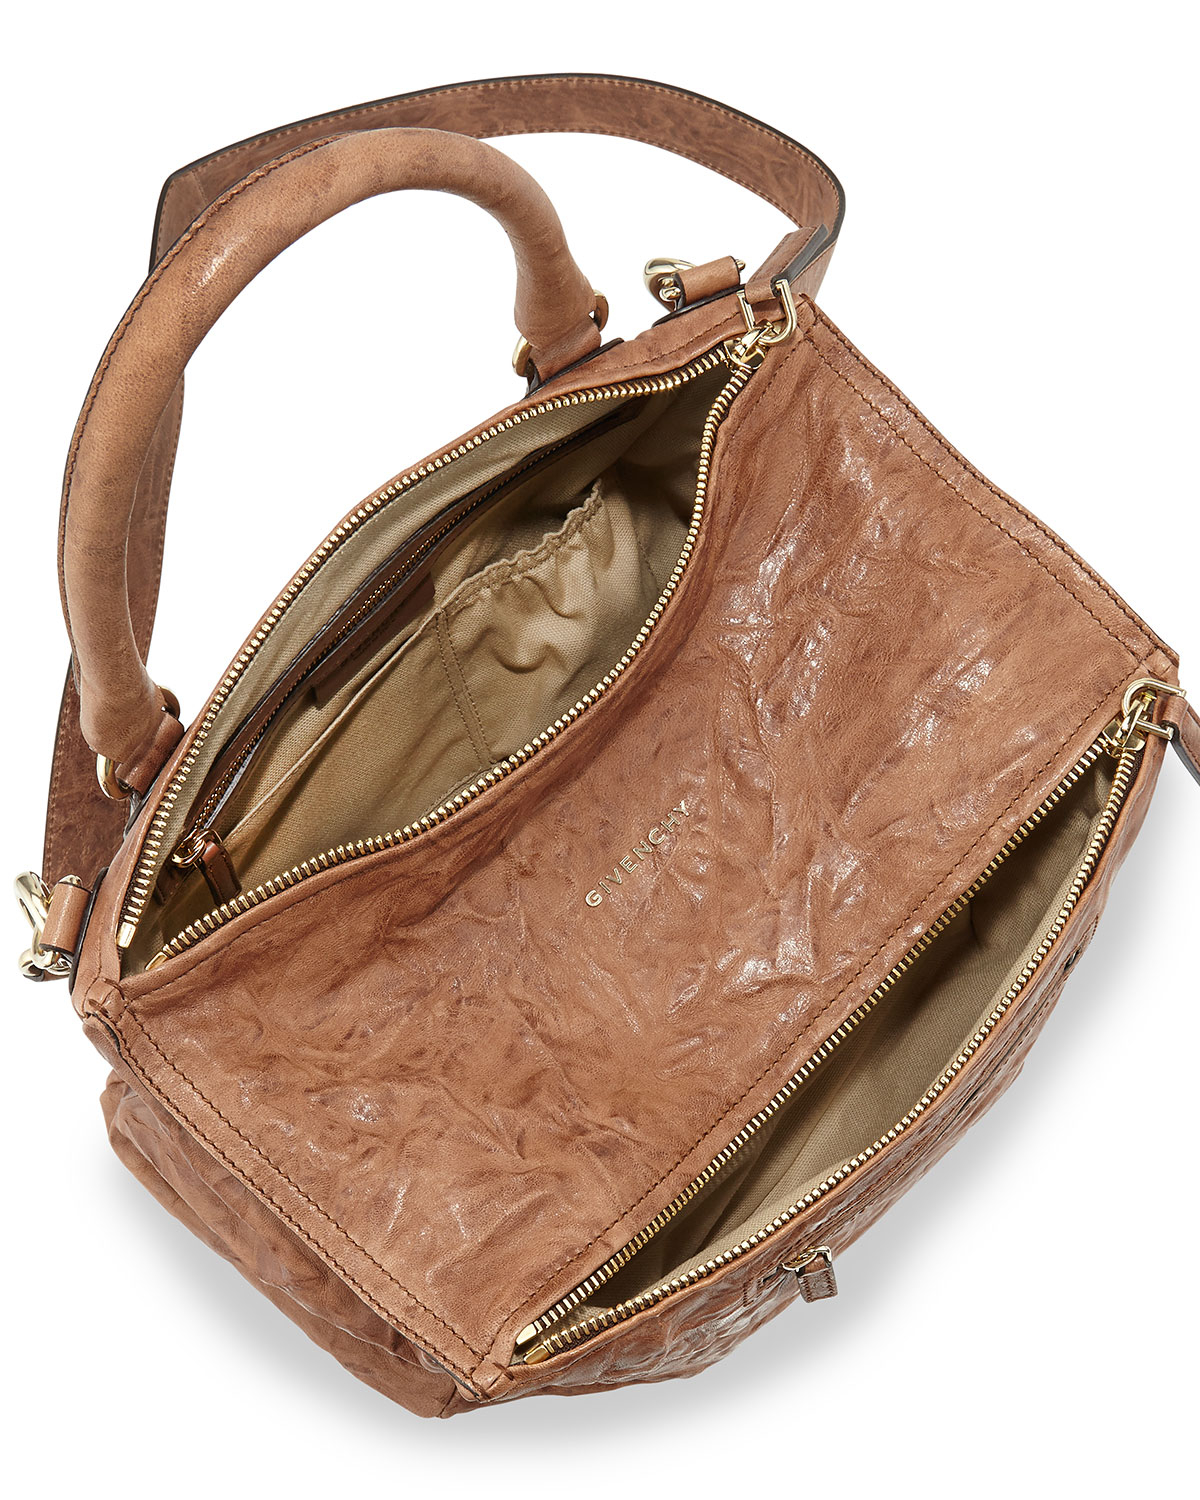 577254618a Lyst - Givenchy Pandora Medium Shoulder Bag in Brown